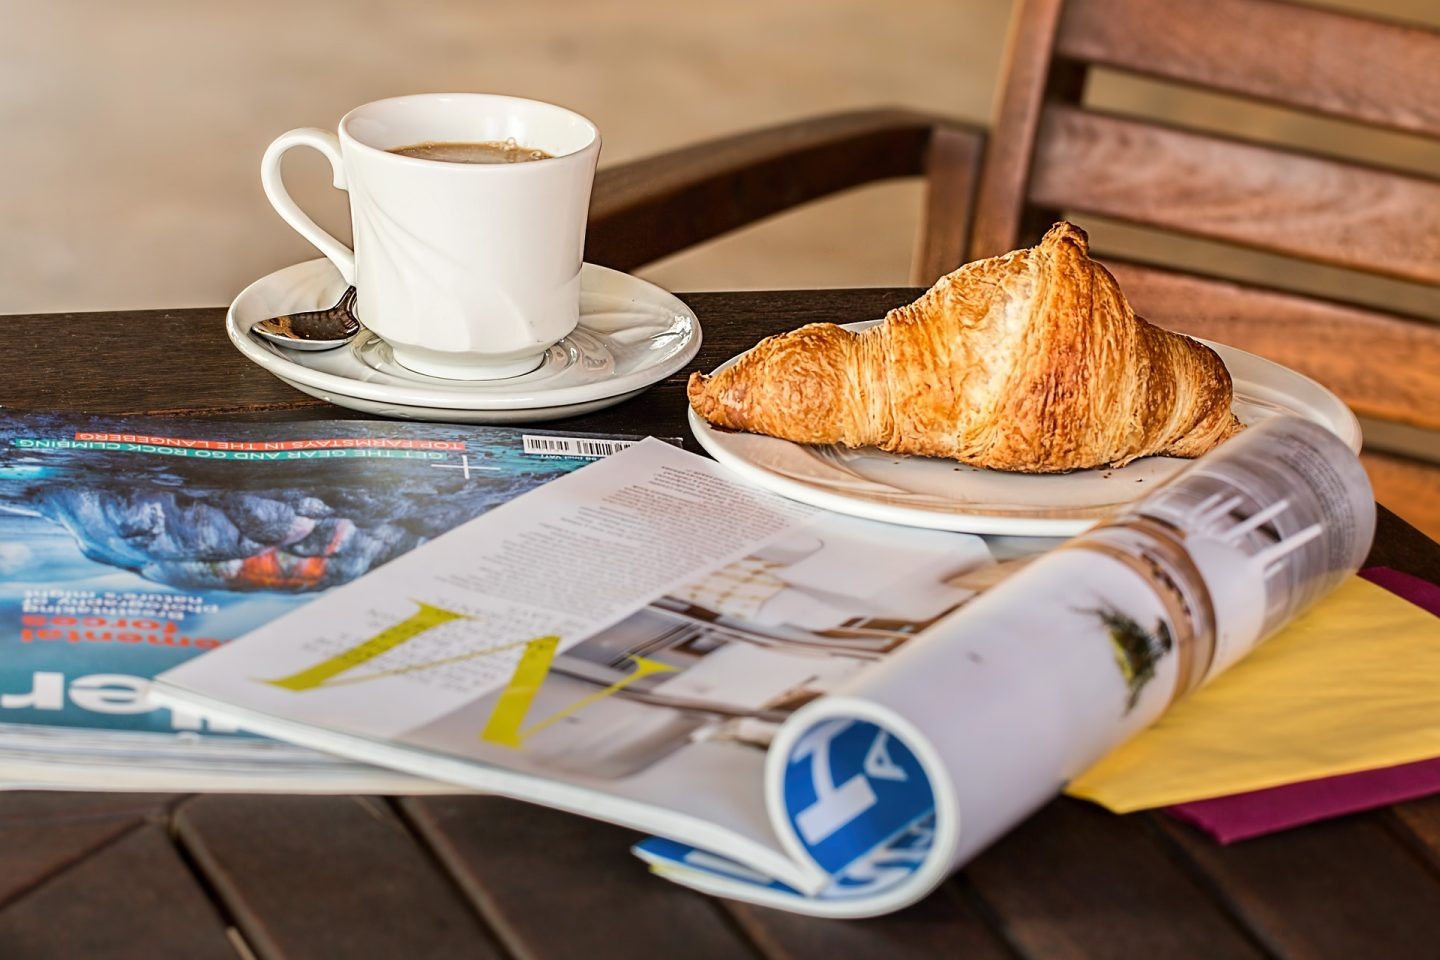 A relaxed morning with coffee, croissant and an open magazine